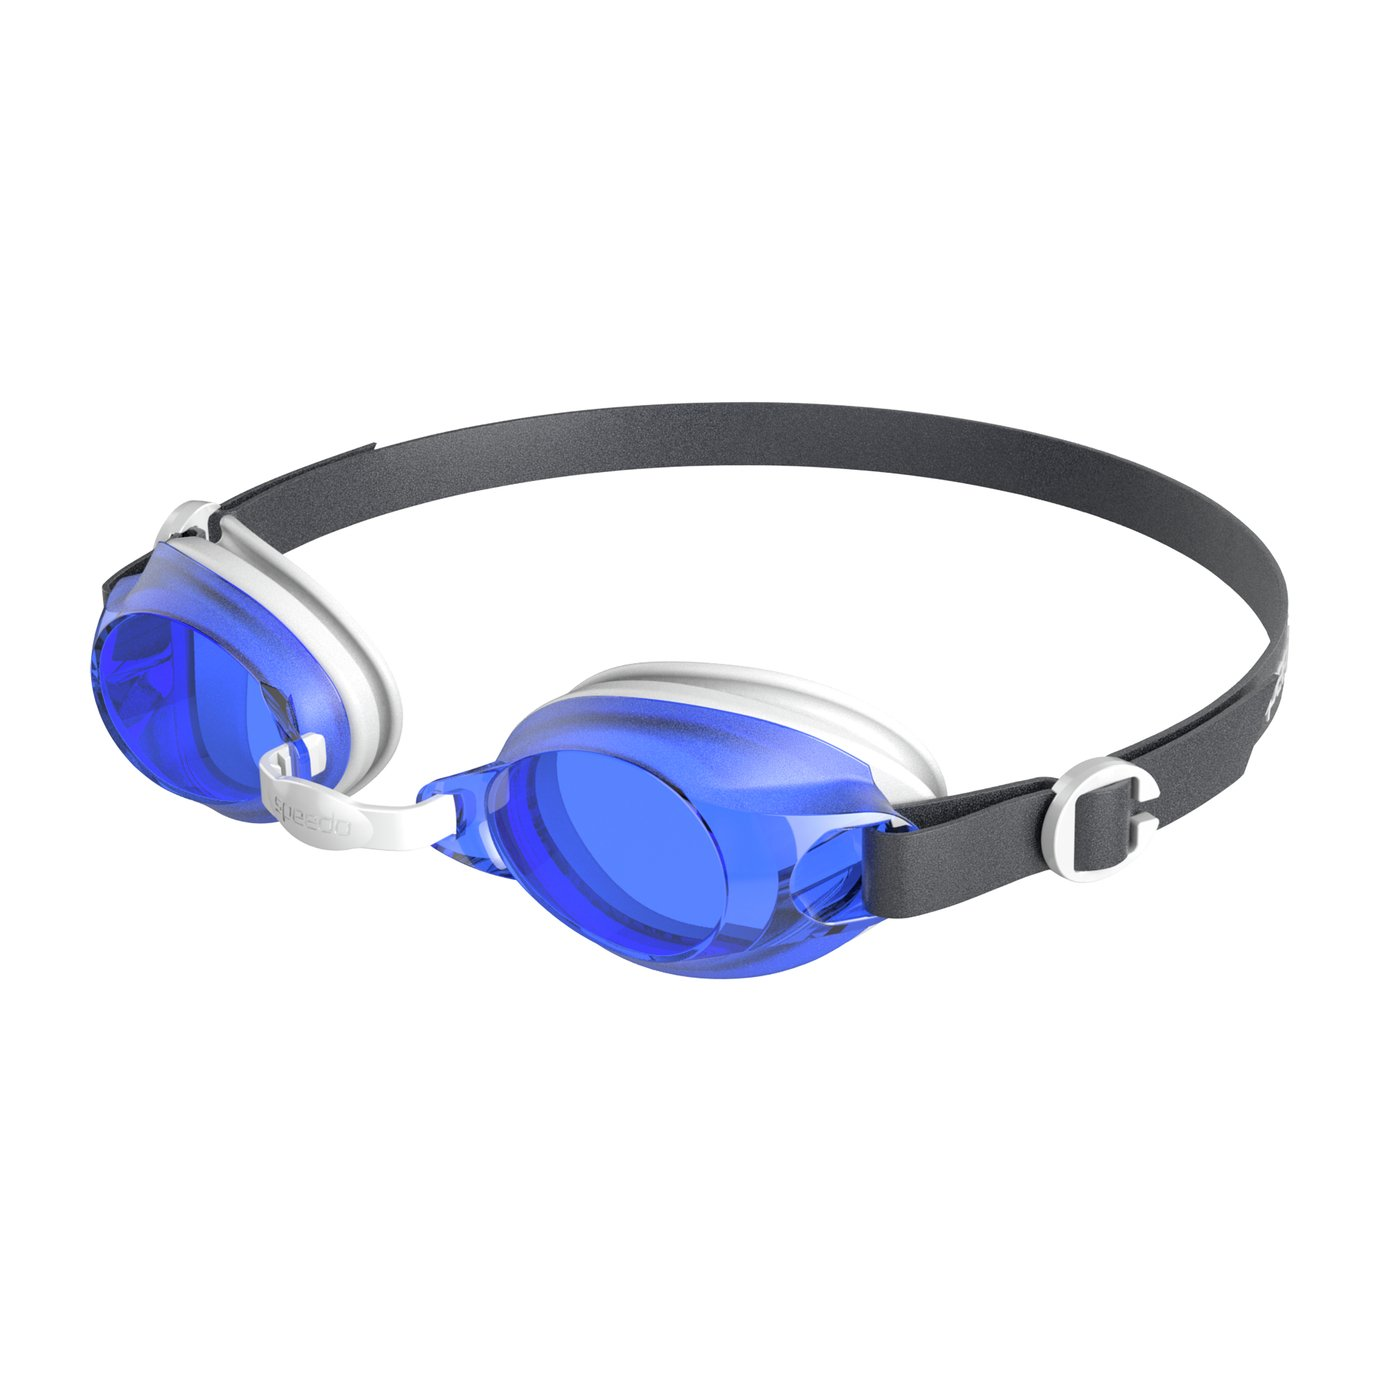 Speedo Jet Blue/White Goggles - Adults. from Speedo